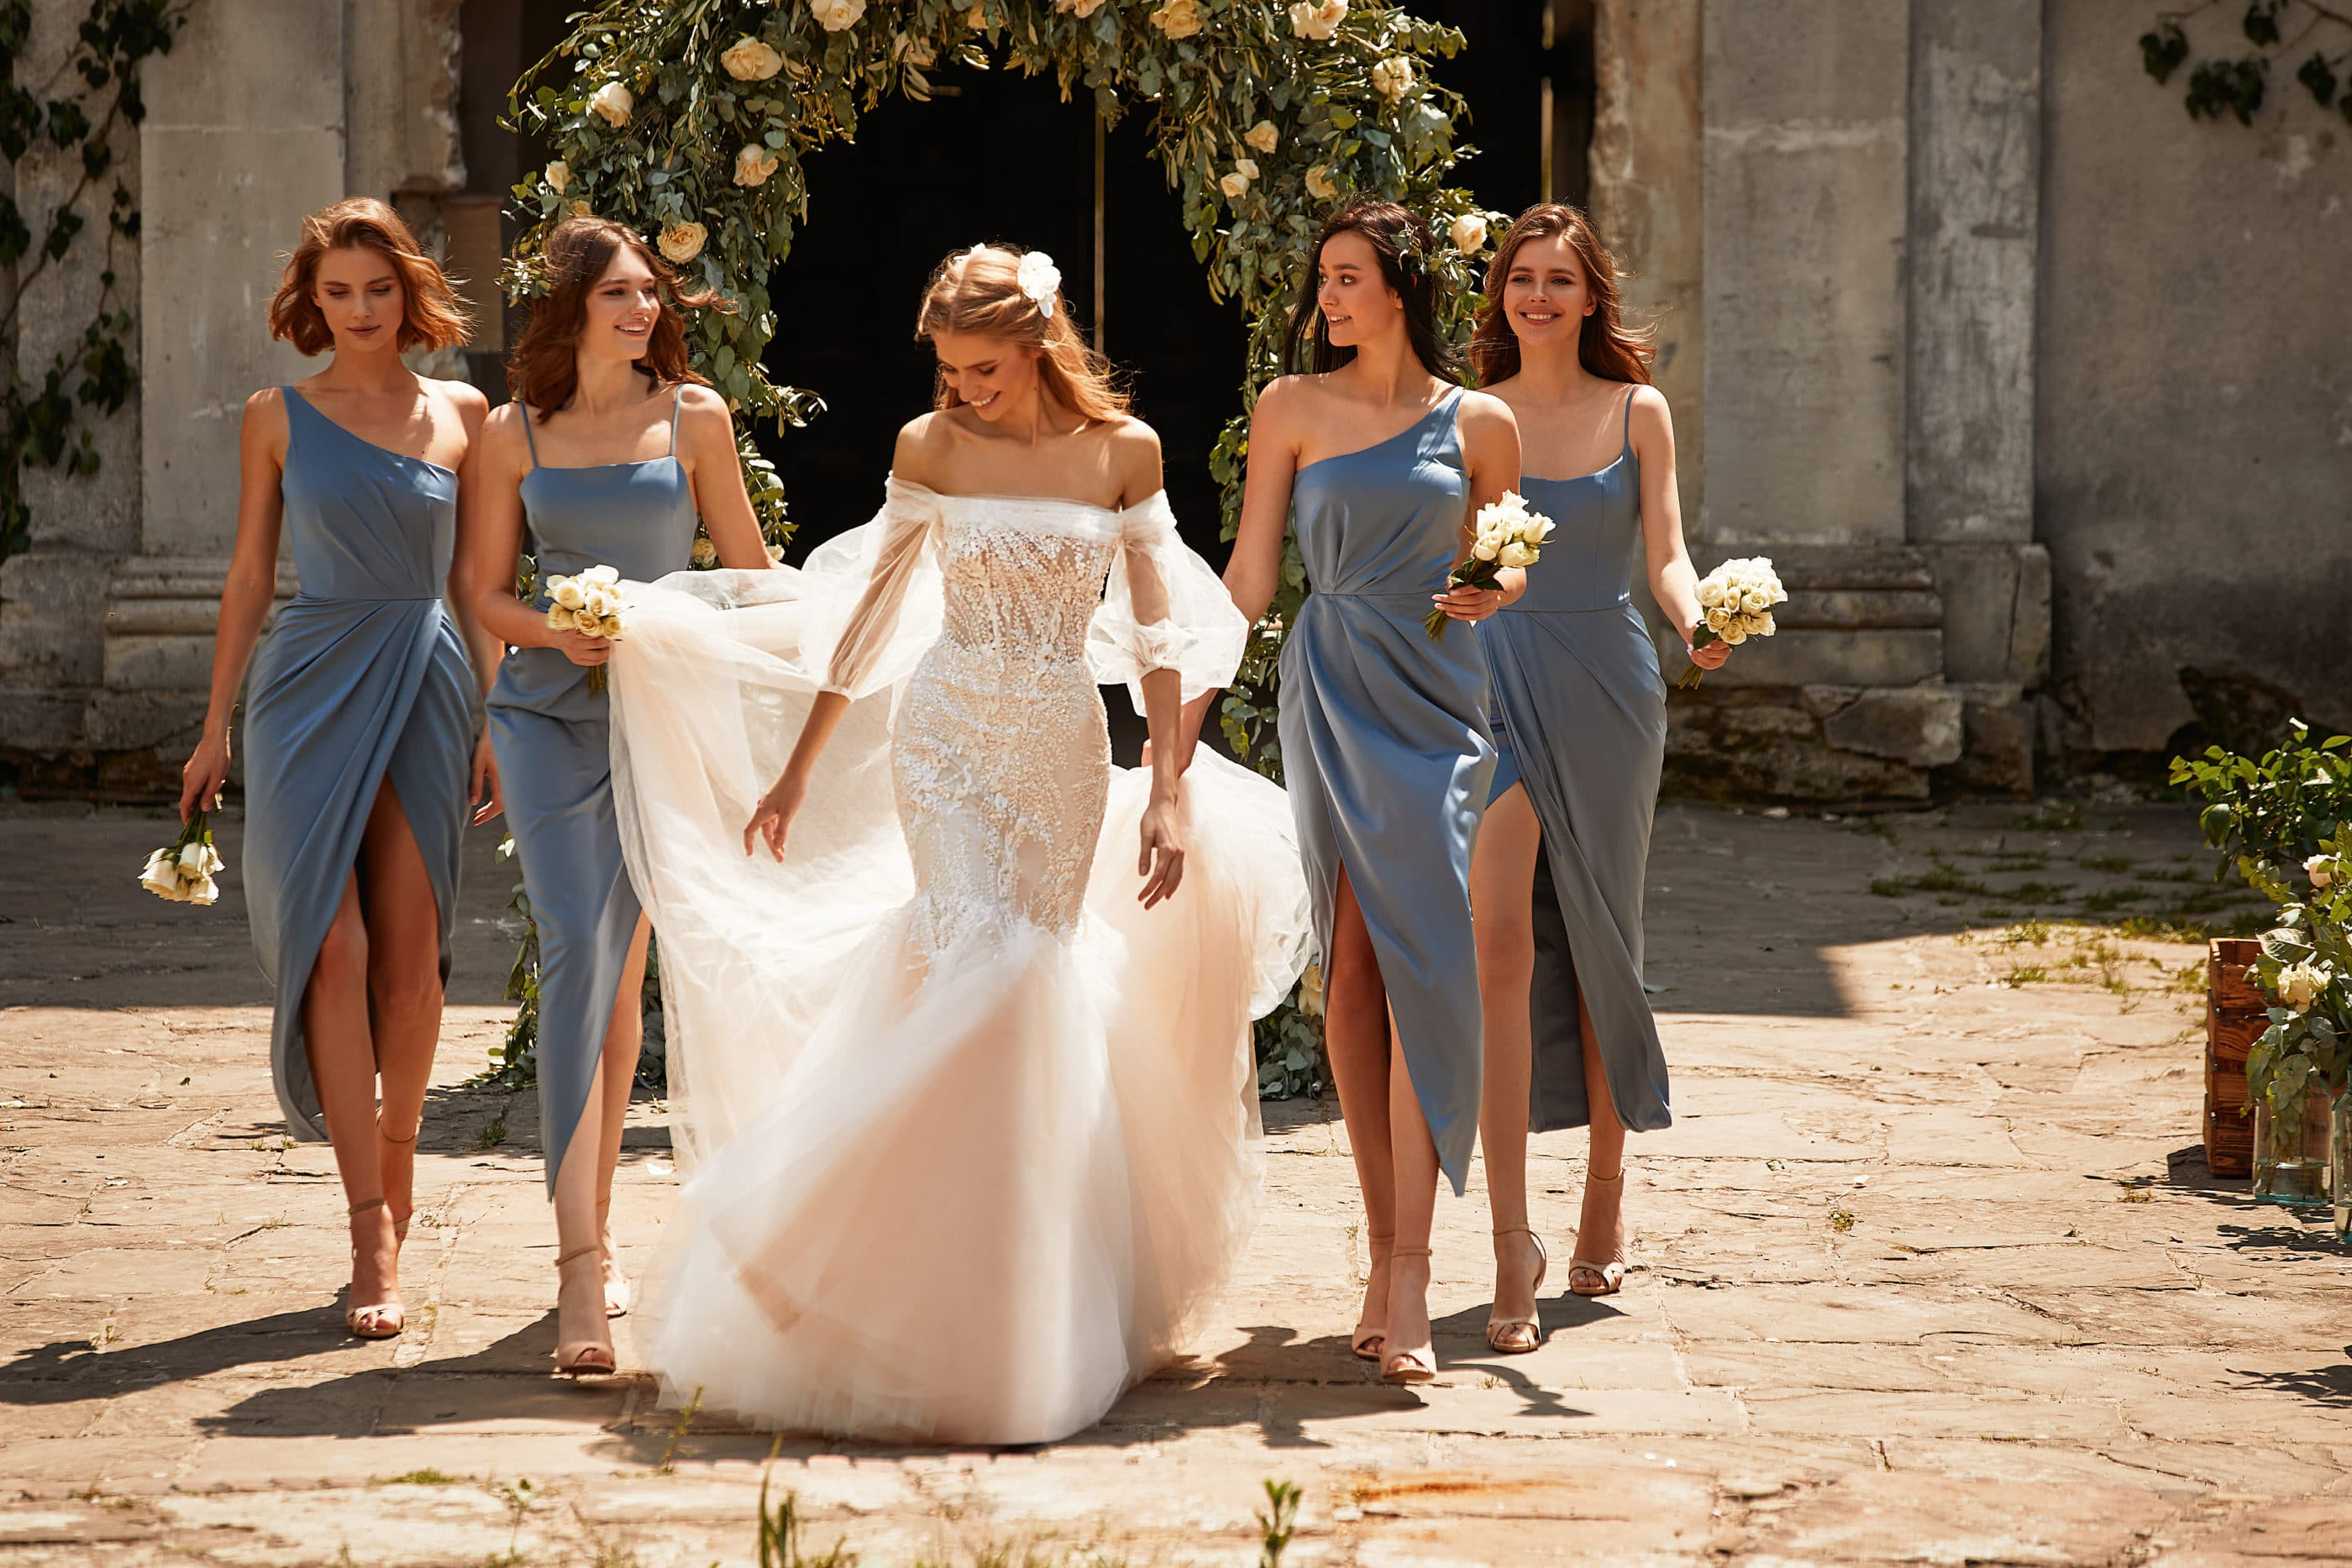 Milla bridesmaid dresses and Milla Nova Dream Wedding Dresses